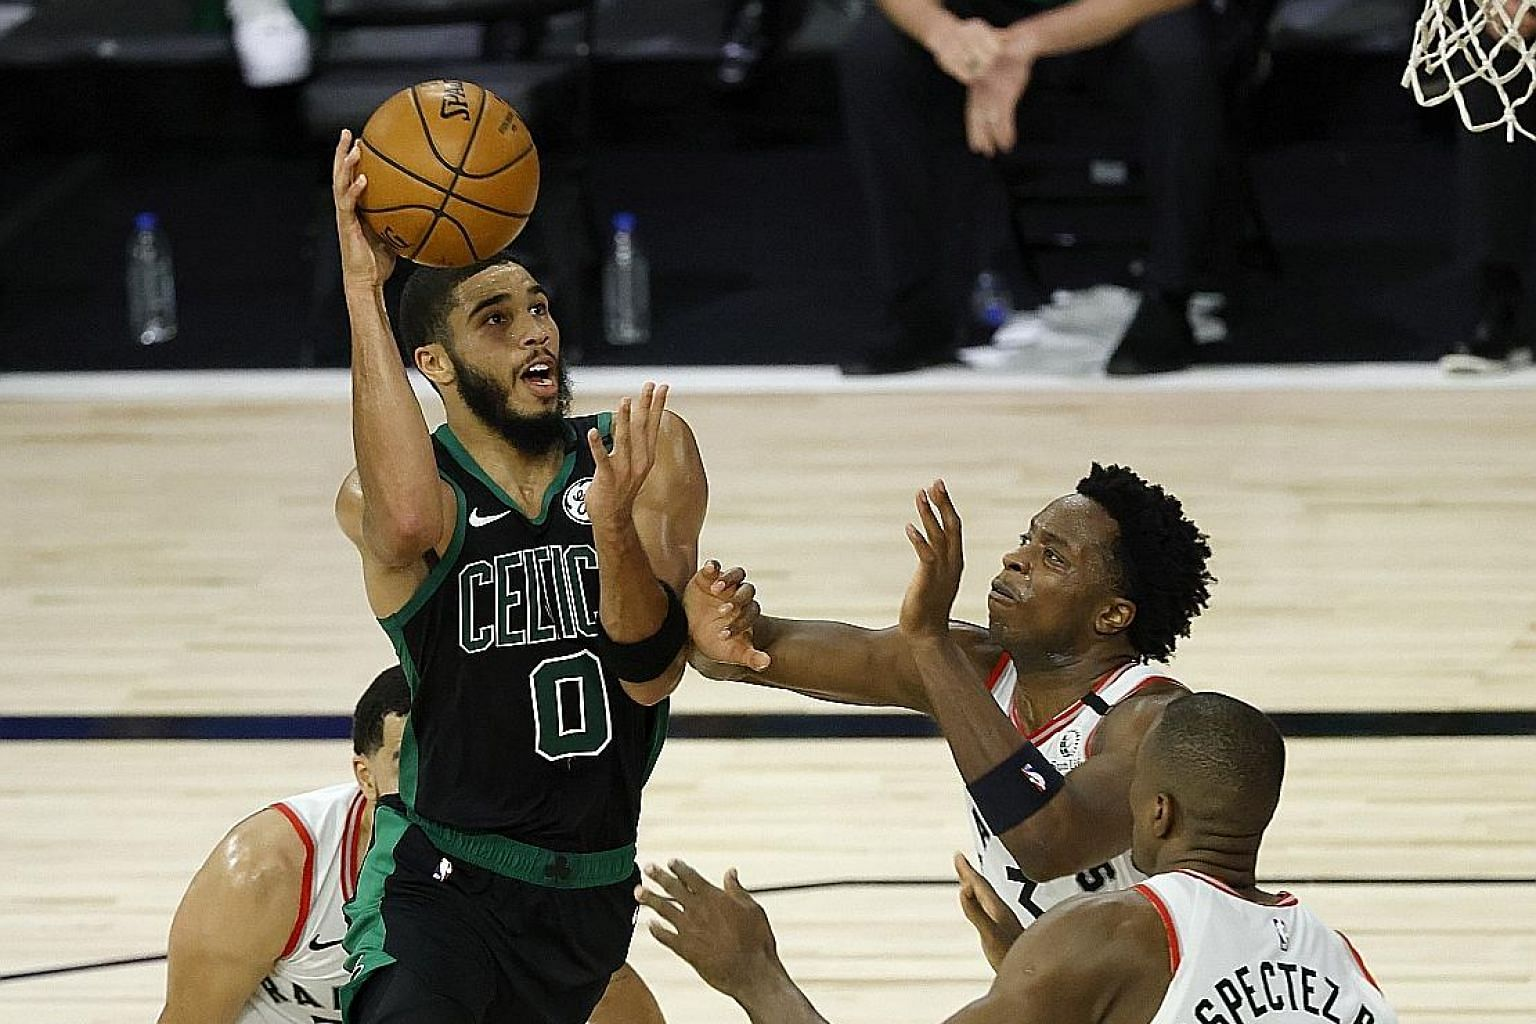 Celtics forward Jayson Tatum going to the basket against the Toronto Raptors during their Eastern Conference semi-finals. He finished with a game-high 34 points.